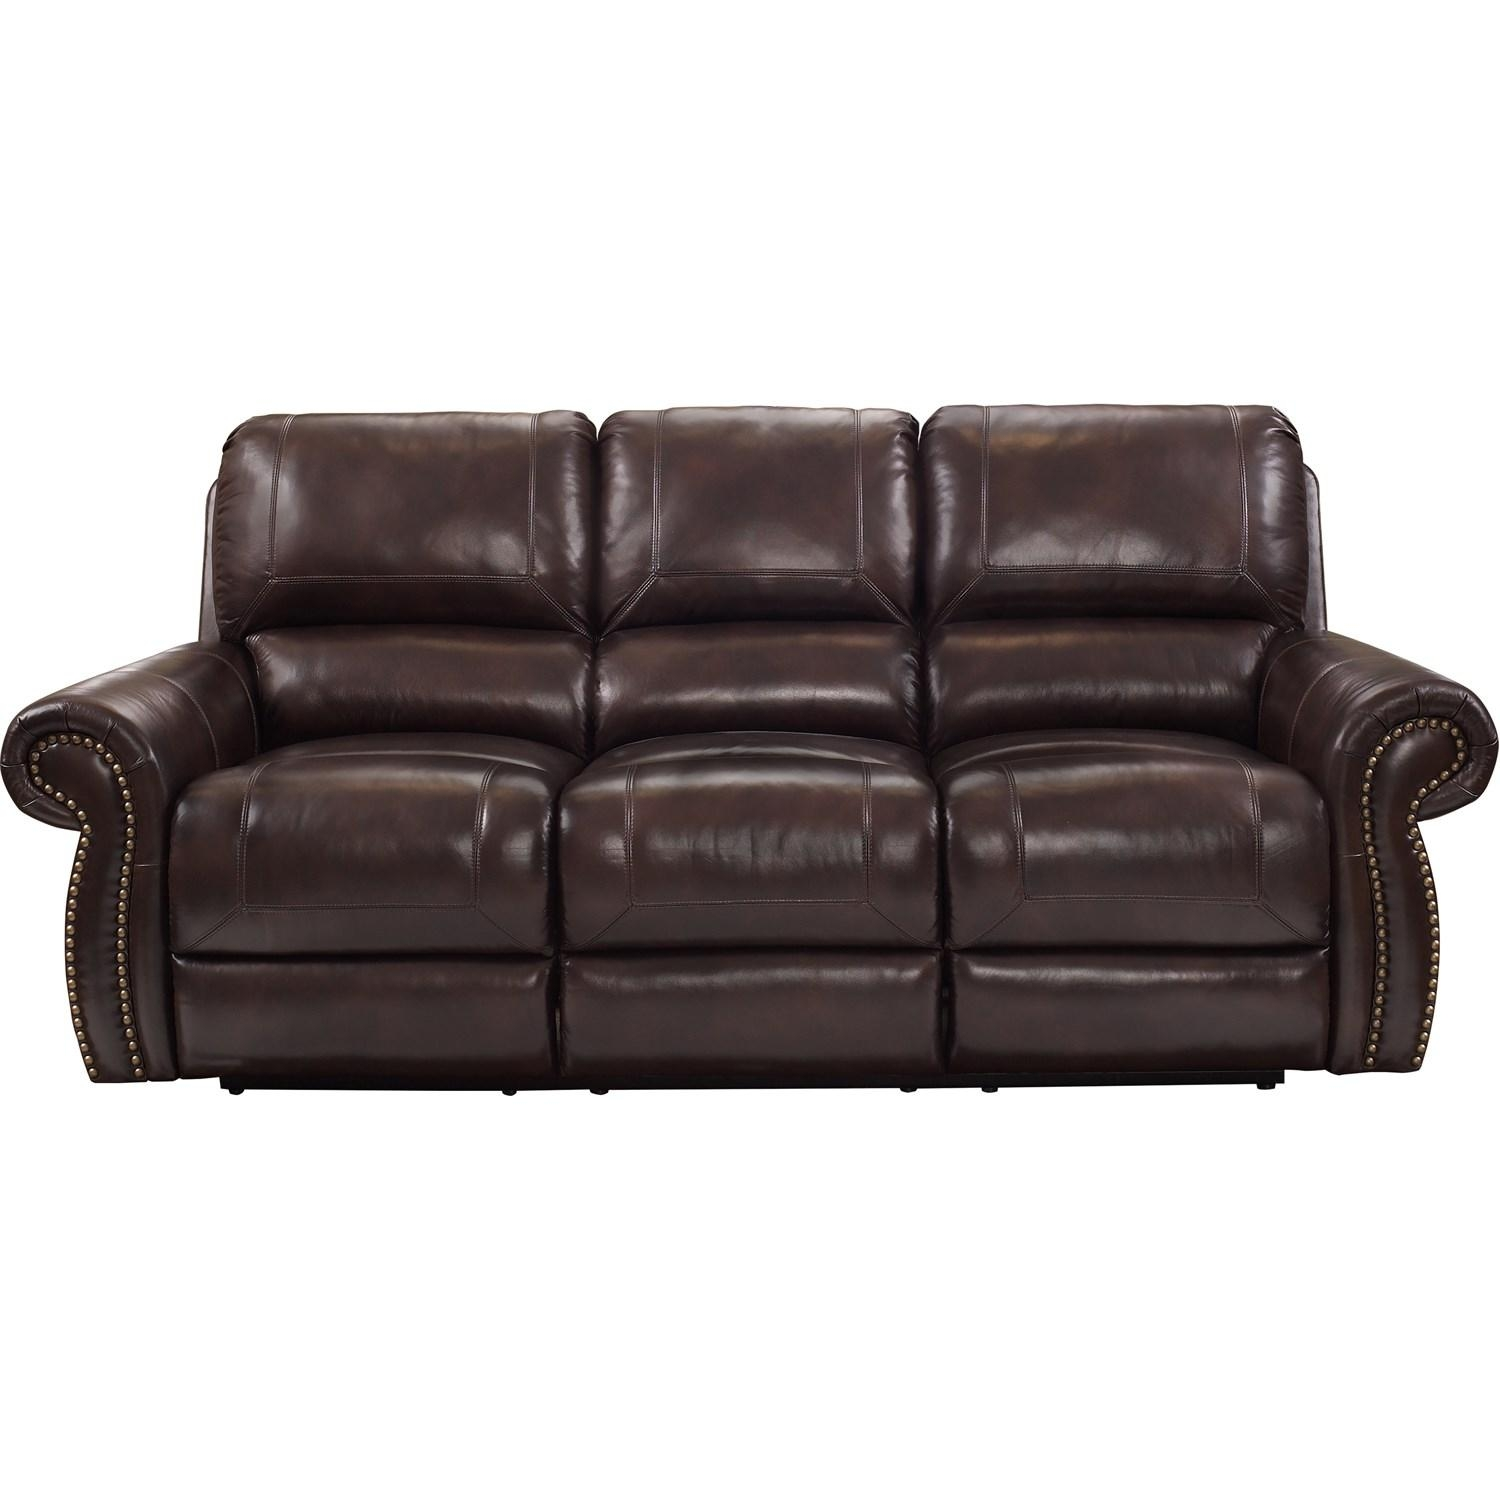 Barcalounger 353027315086 Nora Sofa Recliner In Barton Amber Throughout Barcalounger Sofas (Image 1 of 20)